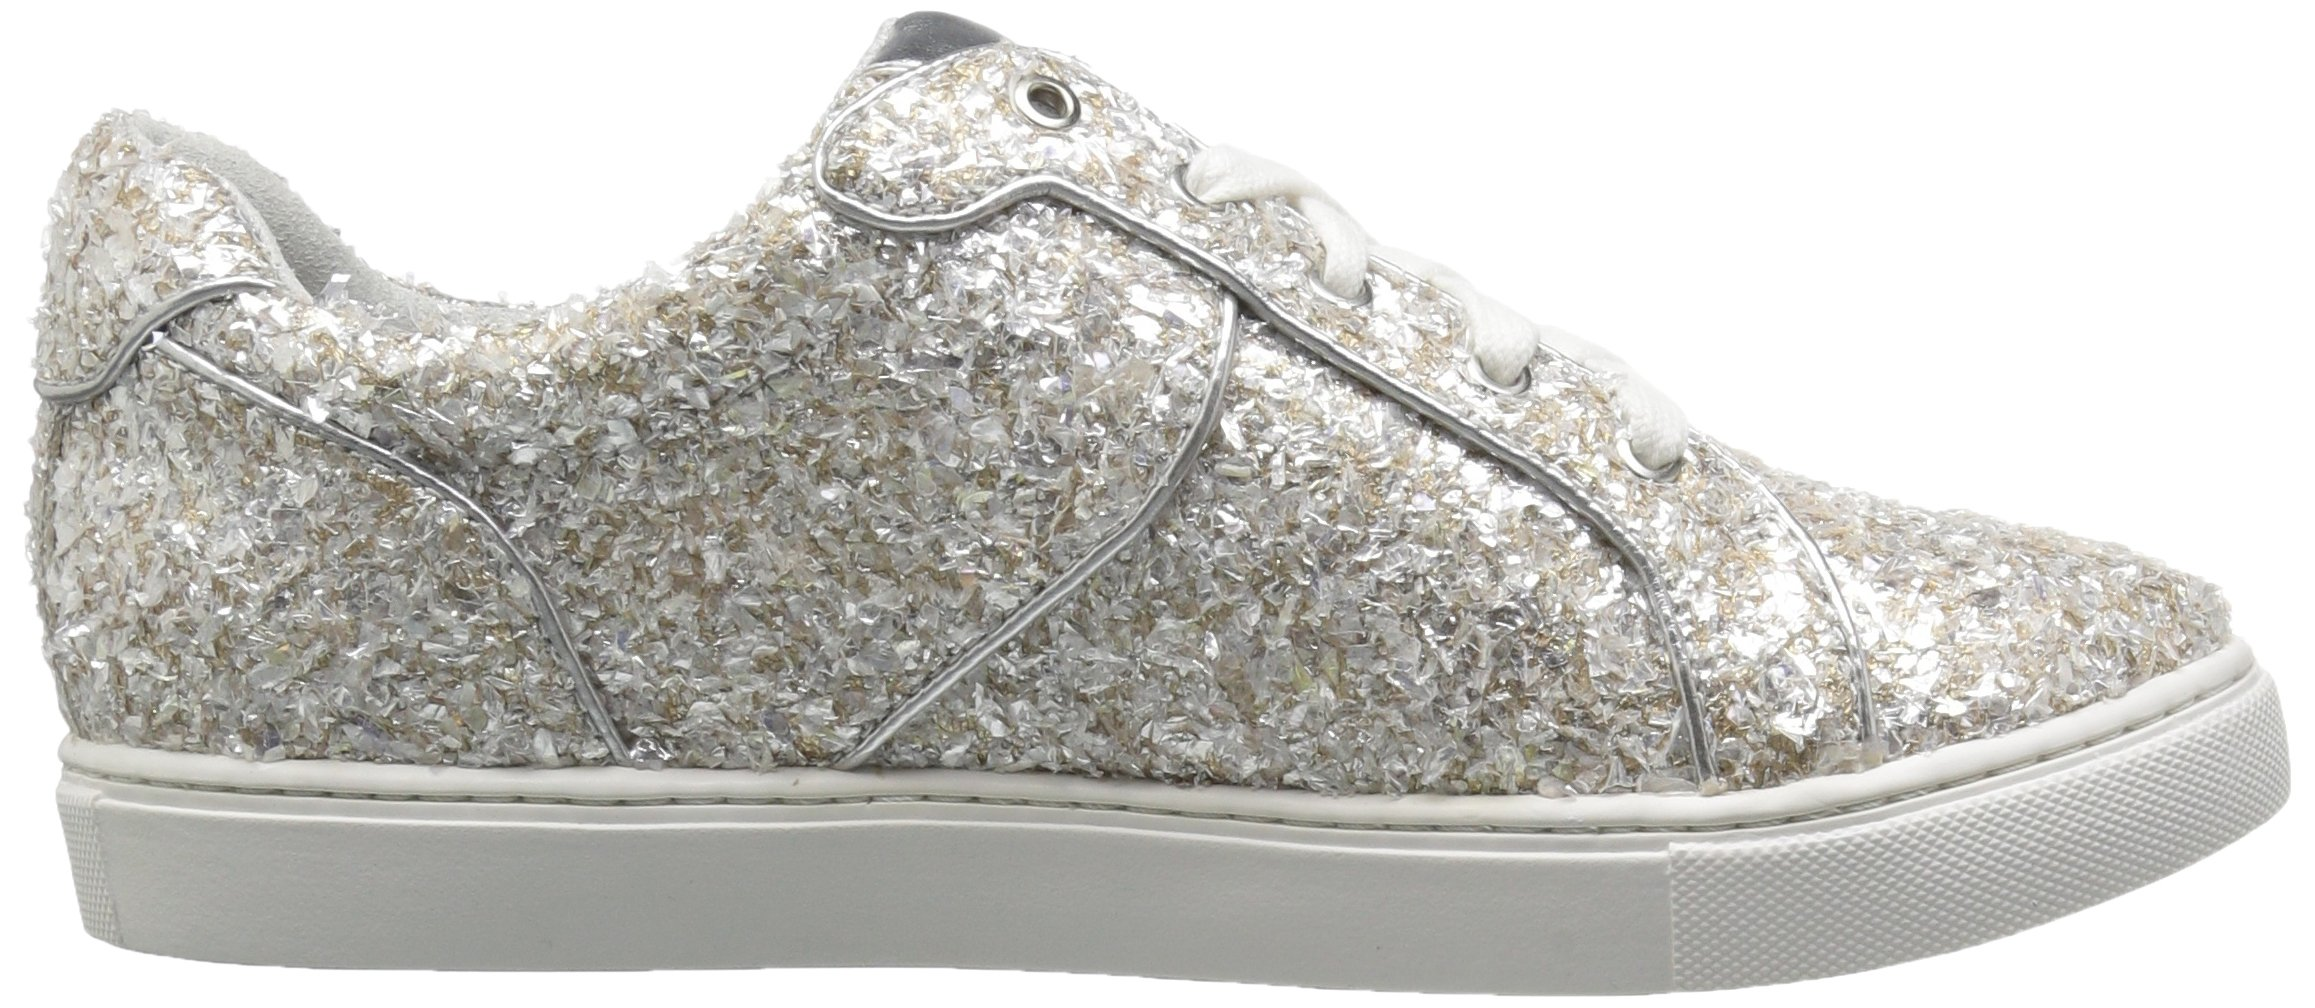 The Fix Women's Tawny Lace-up Fashion Sneaker, Silver Ice, 7.5 B US by The Fix (Image #7)